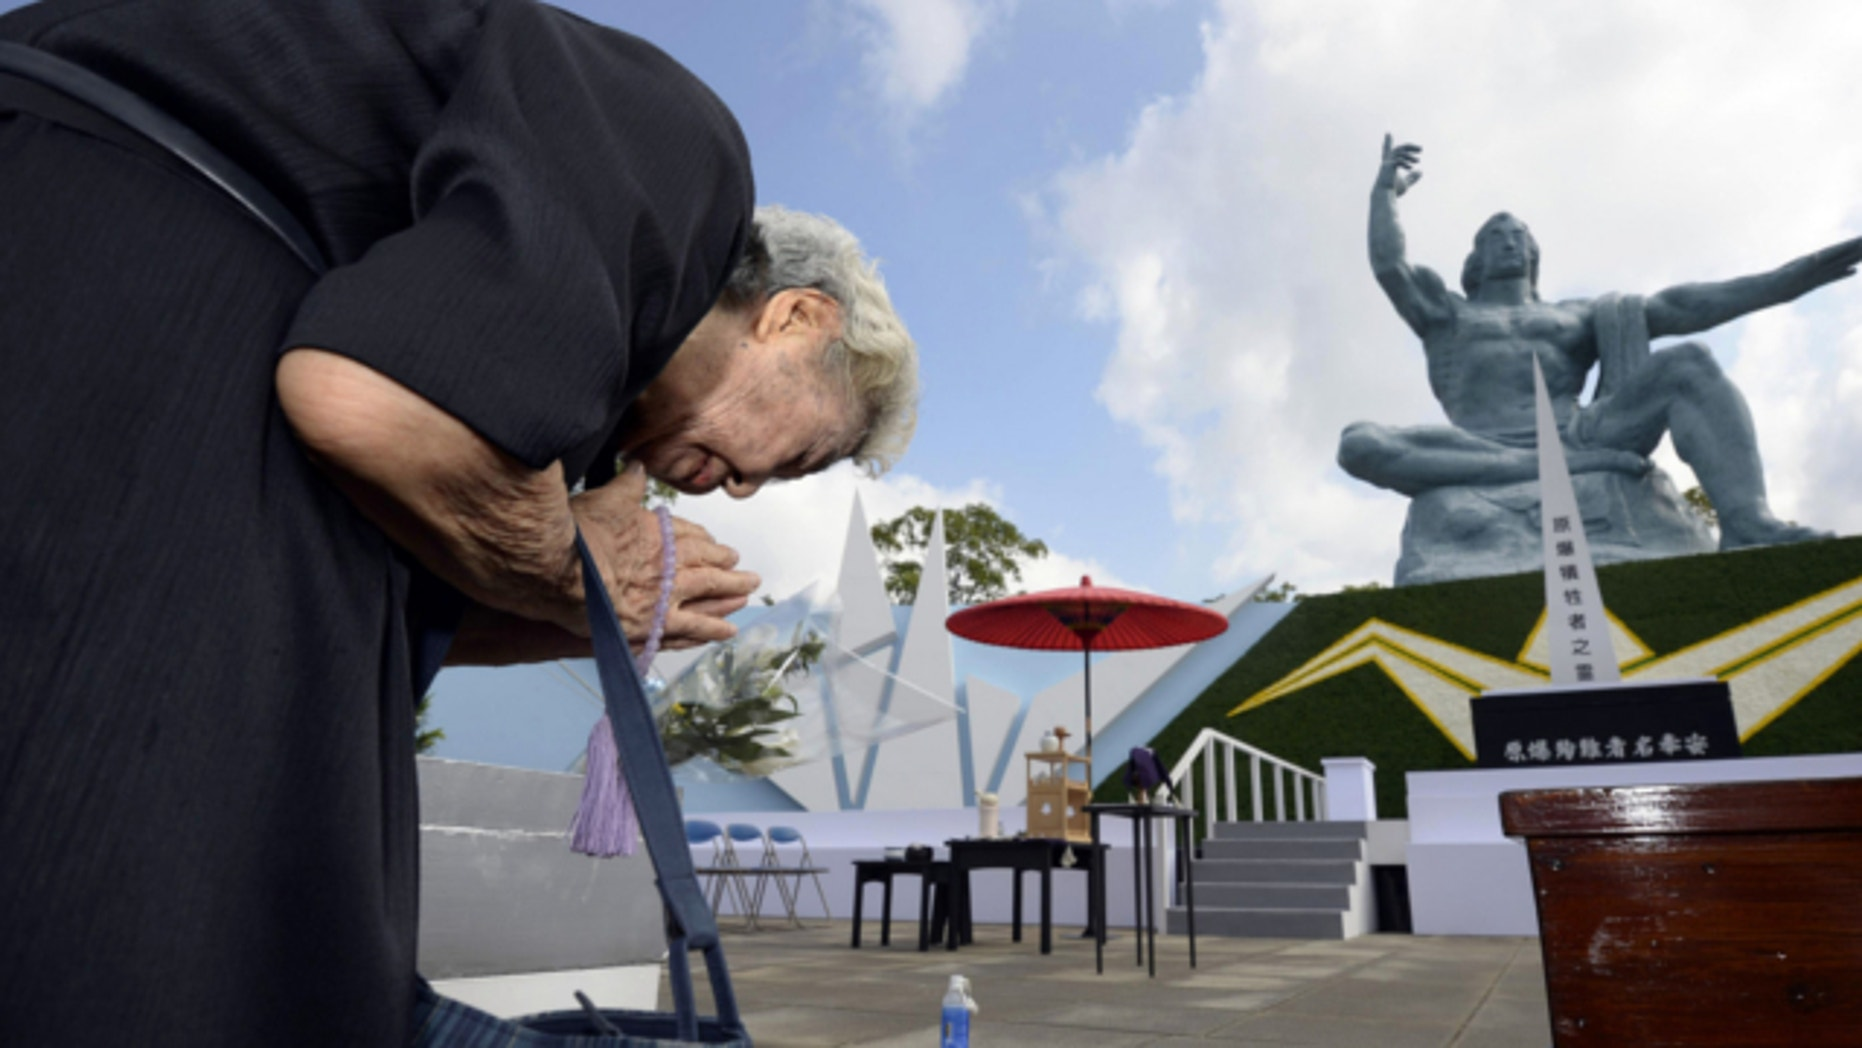 Aug. 9, 2013: A woman offers prayers at Nagasaki Peace Park in Nagasaki, southern Japan to mark the 68th anniversary of the world's second atomic bomb attack over the city.